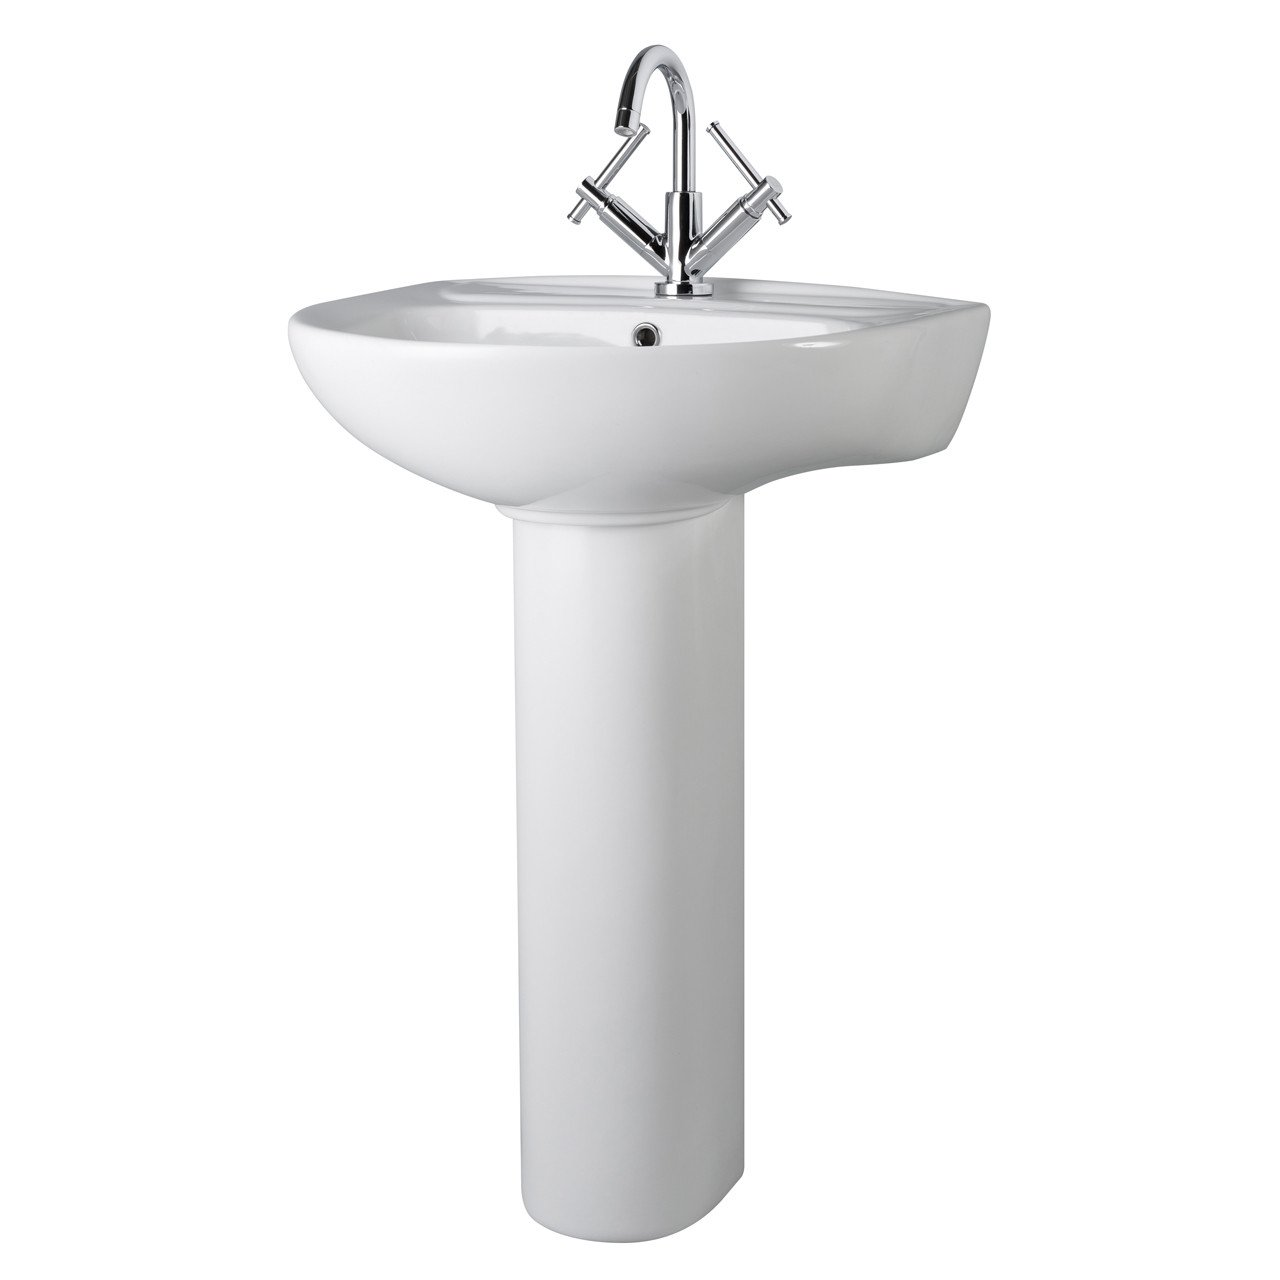 Premier Melbourne 550mm Basin with 1 Tap Hole and Full Pedestal - CML002